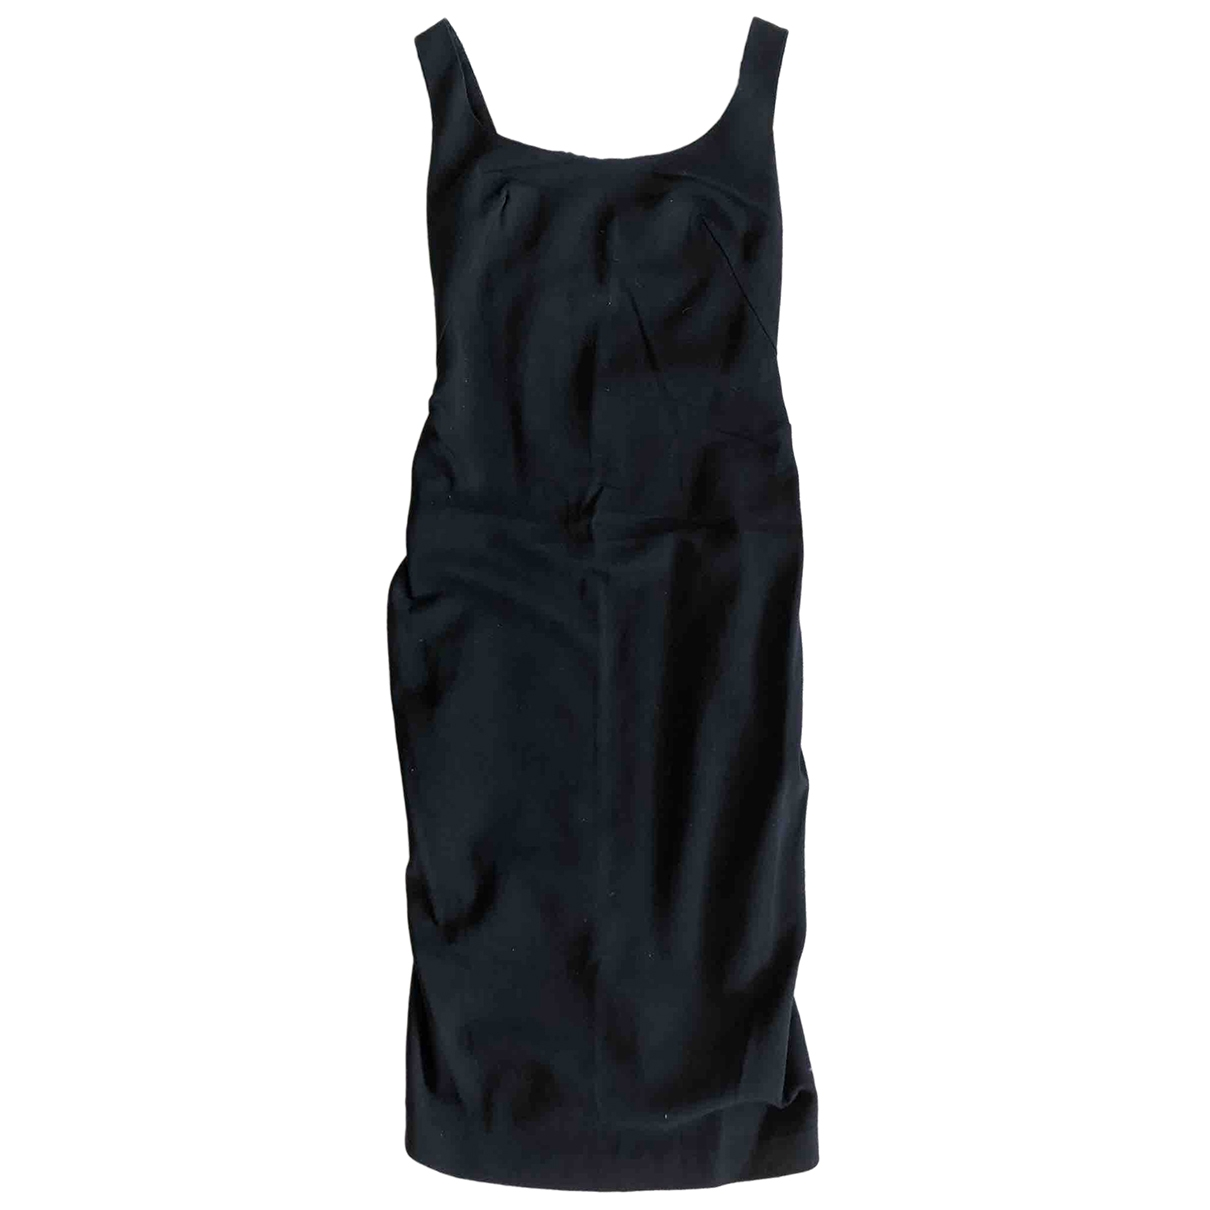 Sport Max \N Black Cotton - elasthane dress for Women 40 IT